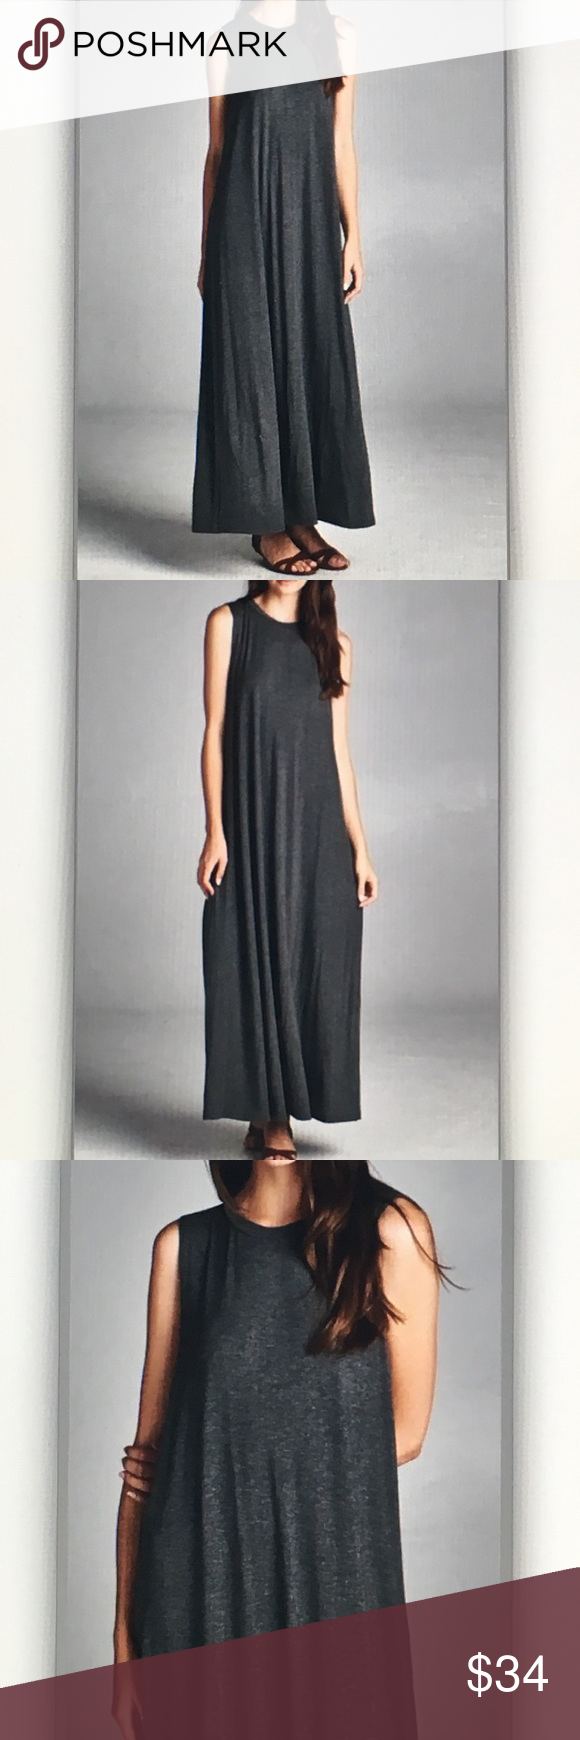 Charcoal sleeveless tunic maxi dress Gorgeous and comfy! Approx. 51 in. Length. Made in USA. Rayon blend. Fits true to size. S-2/4 M-6/8 L-10/12 Dresses Maxi